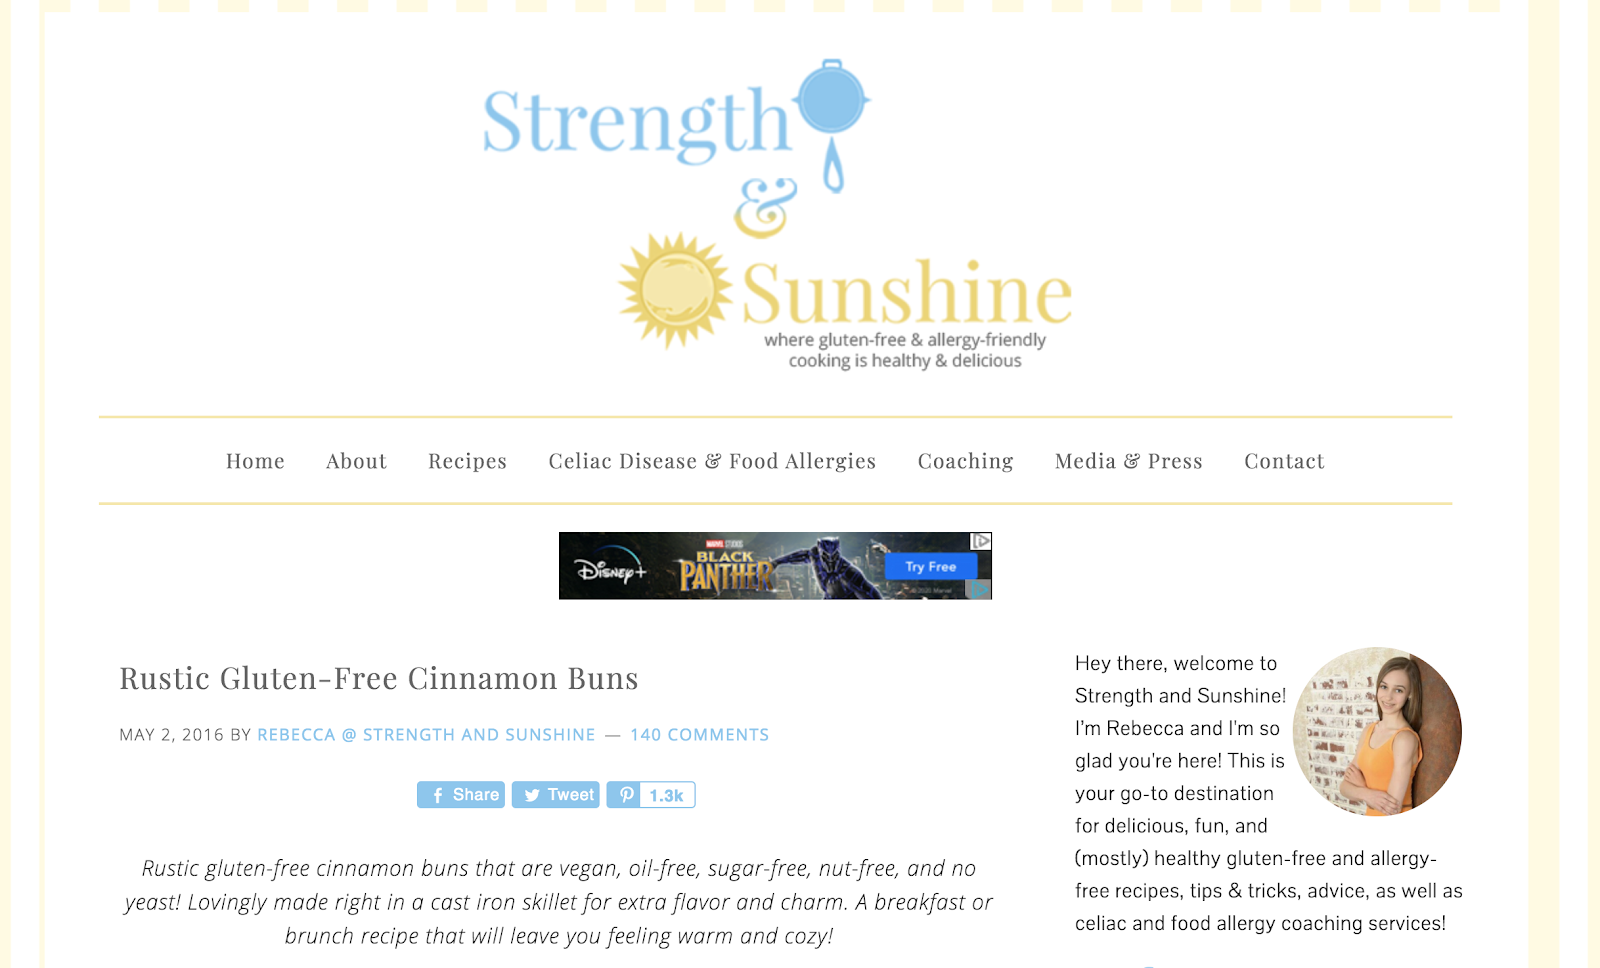 Power and sunlight home page (screenshots) and example